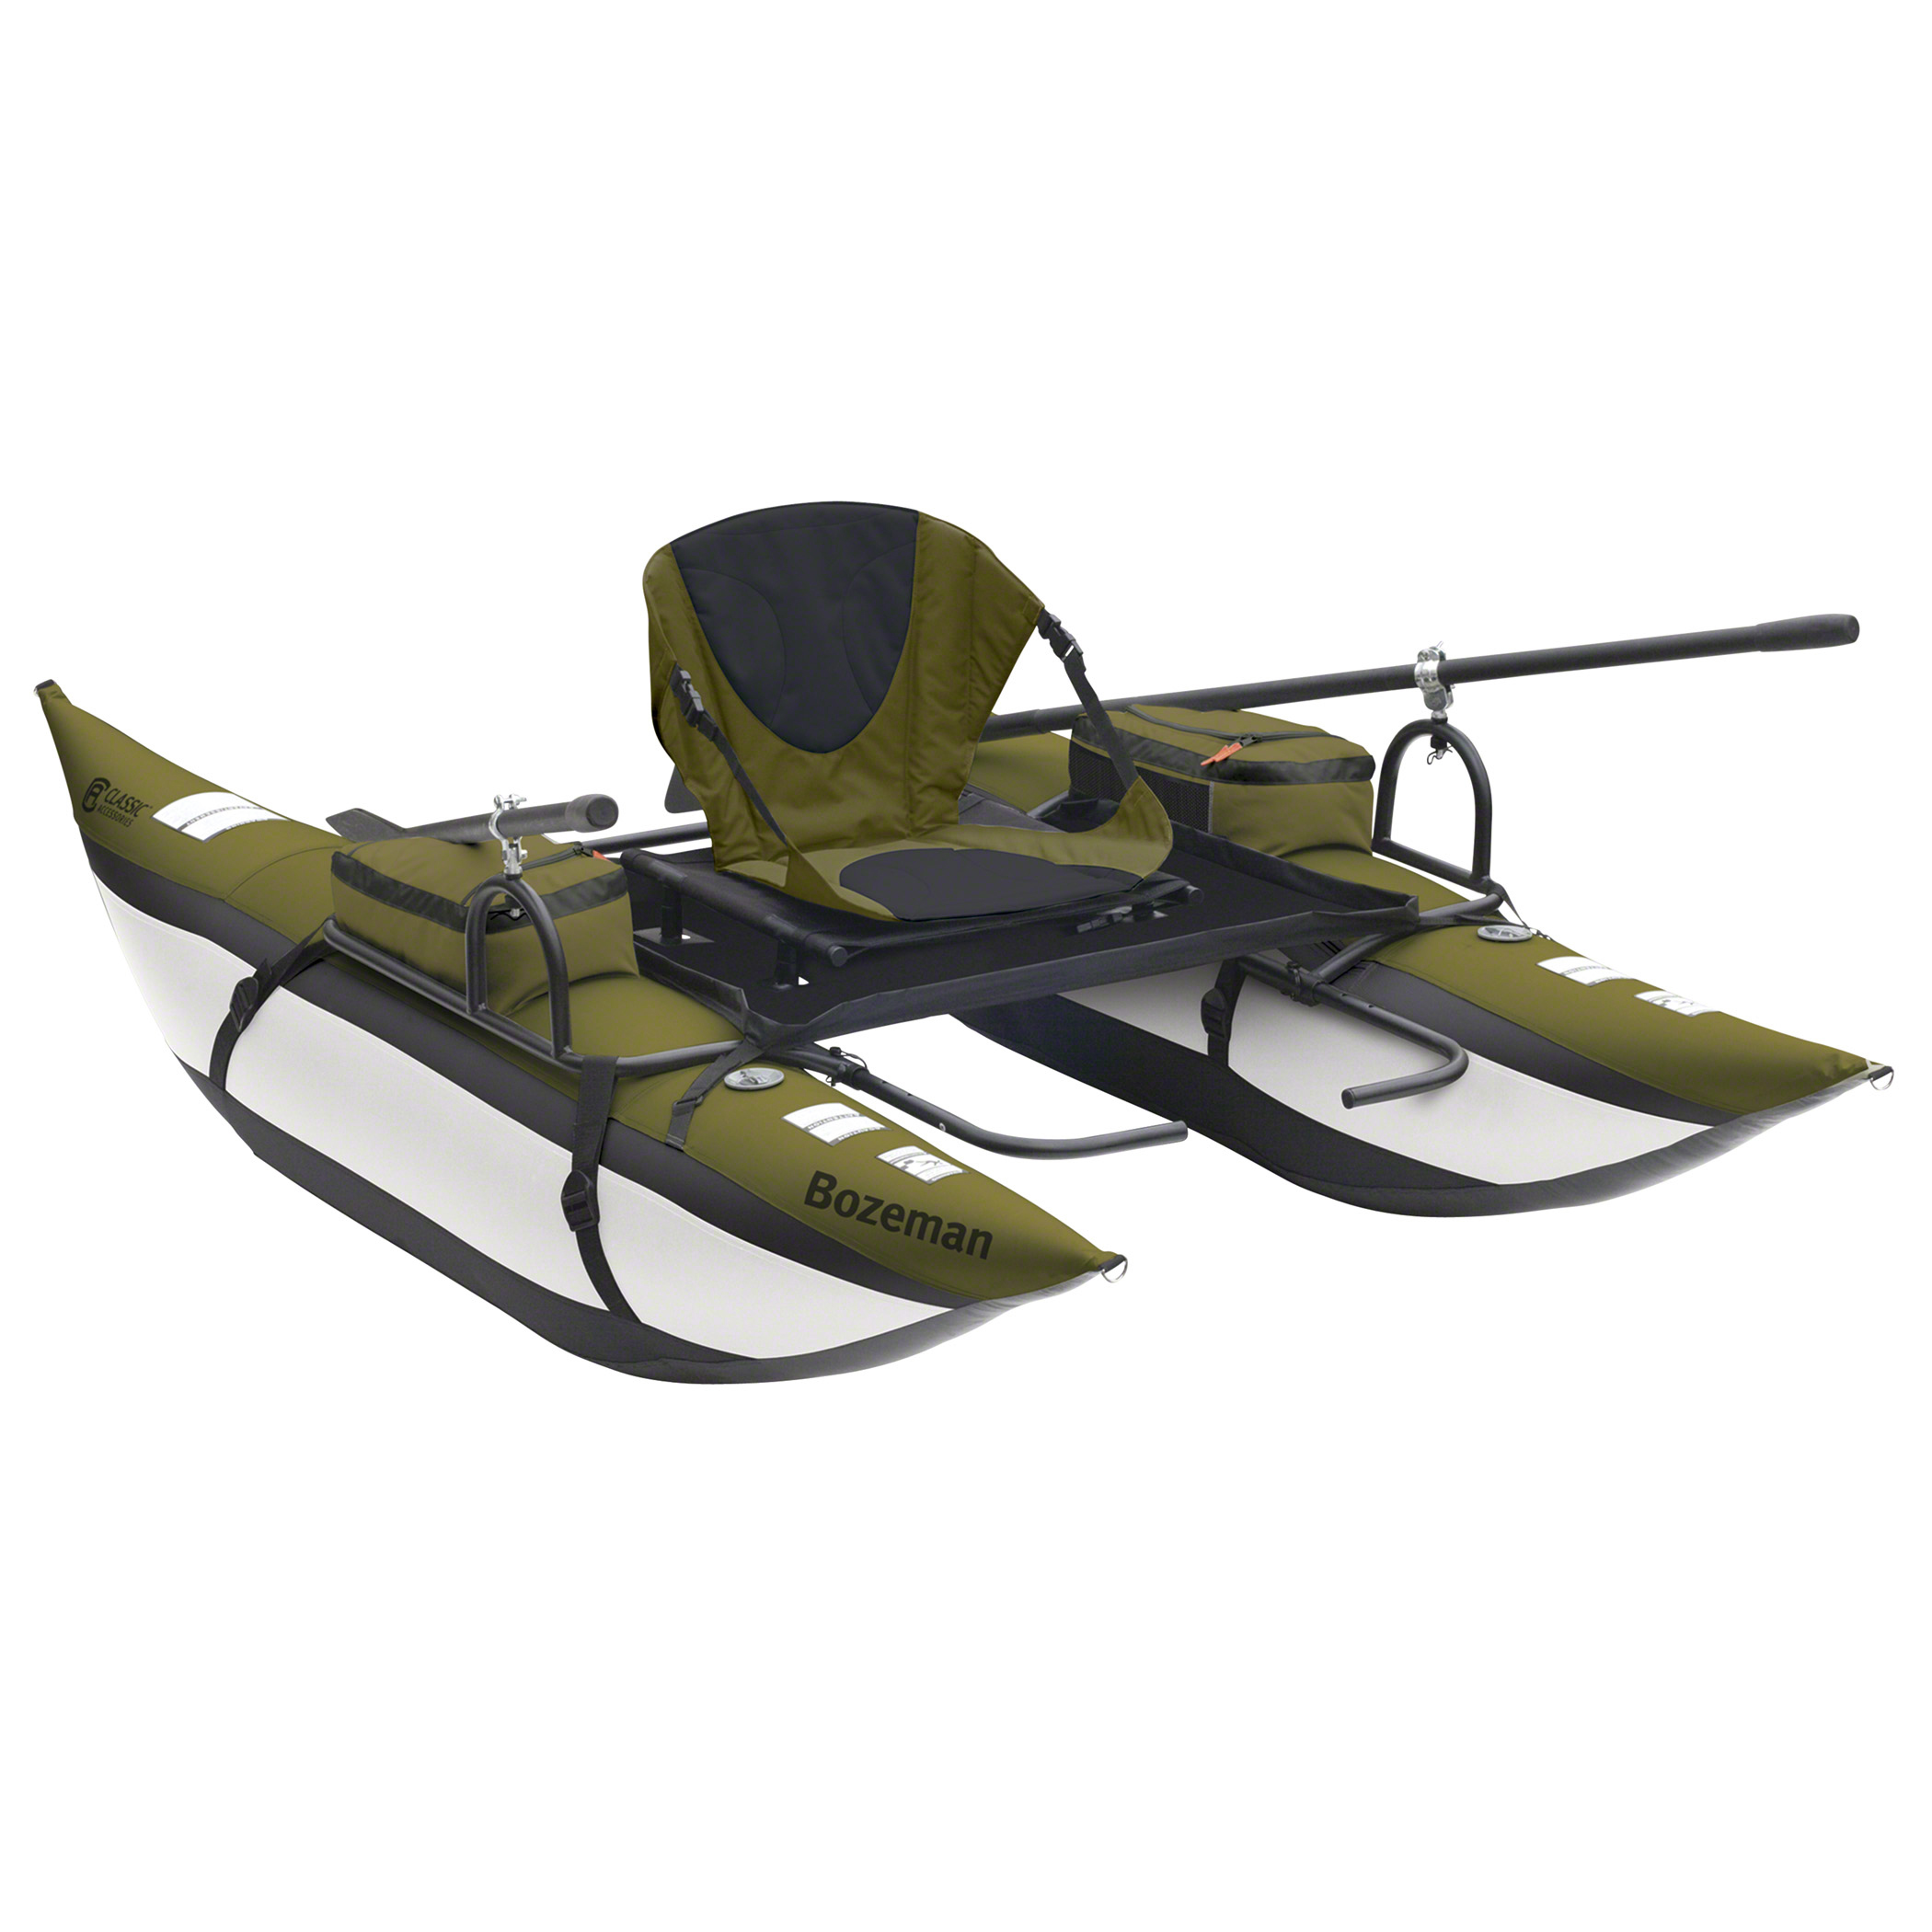 Fly fishing pontoon boats by stephen miller at for Fly fishing pontoon boats